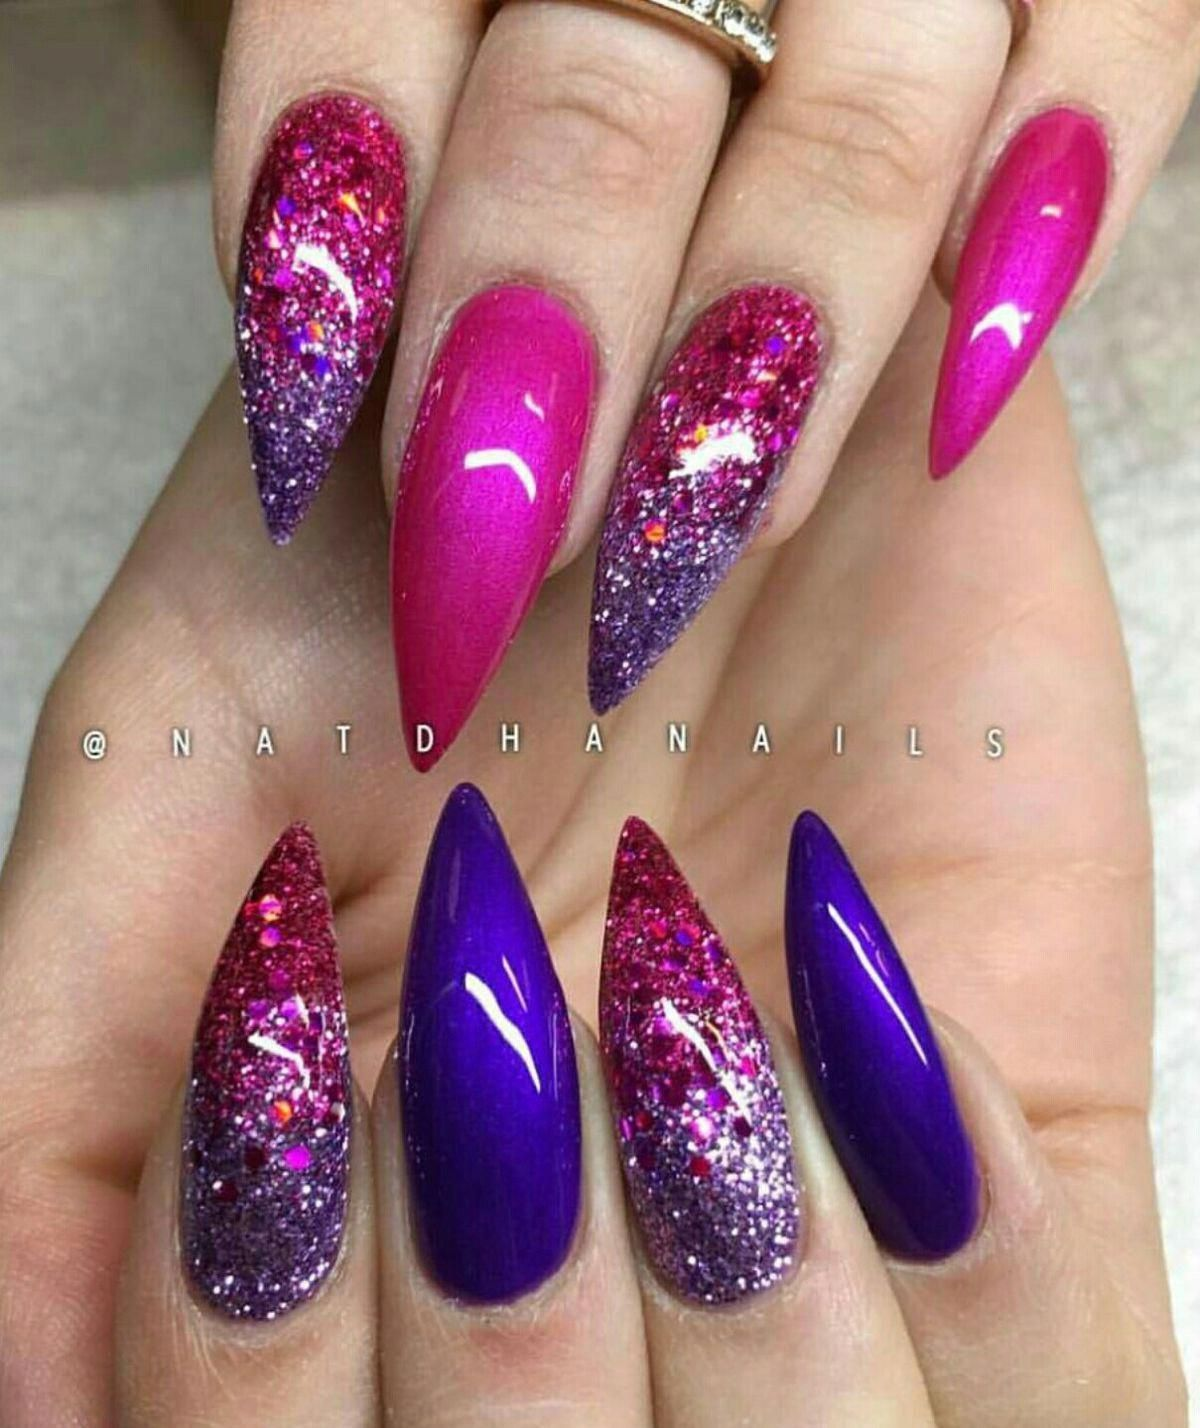 Visit www.facebook.com/groups/codescavengers for Amazon deals up to 99% off on glass nail files, polish, gel polish dryers and more! #stilettonail #ideisuper – Peinados facile